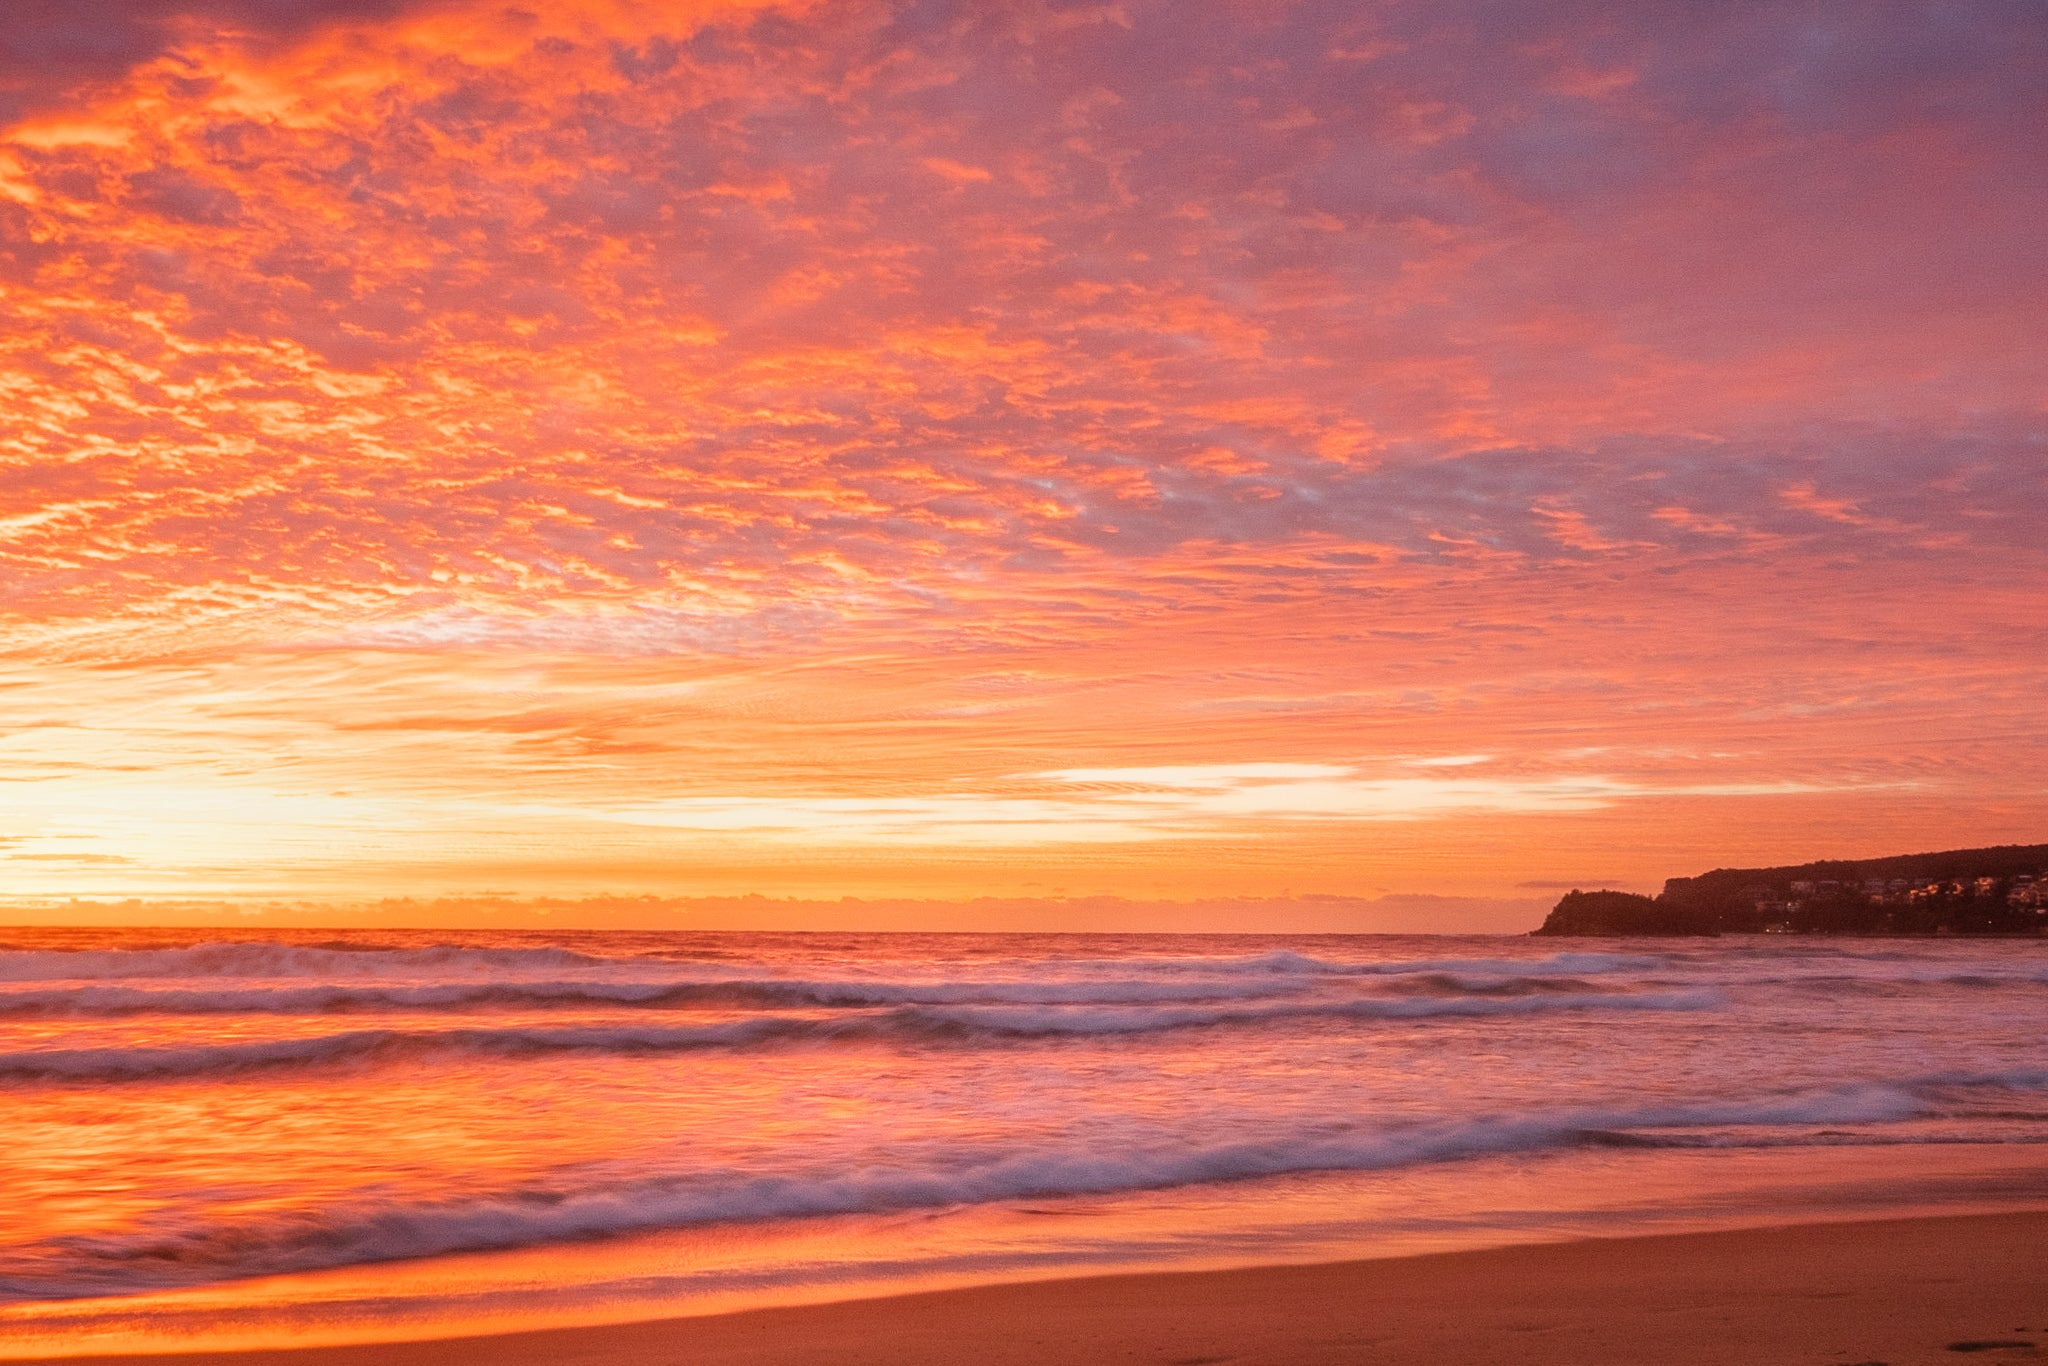 Sunrise photo from the 1st May 2019 at Manly Beach in Sydney